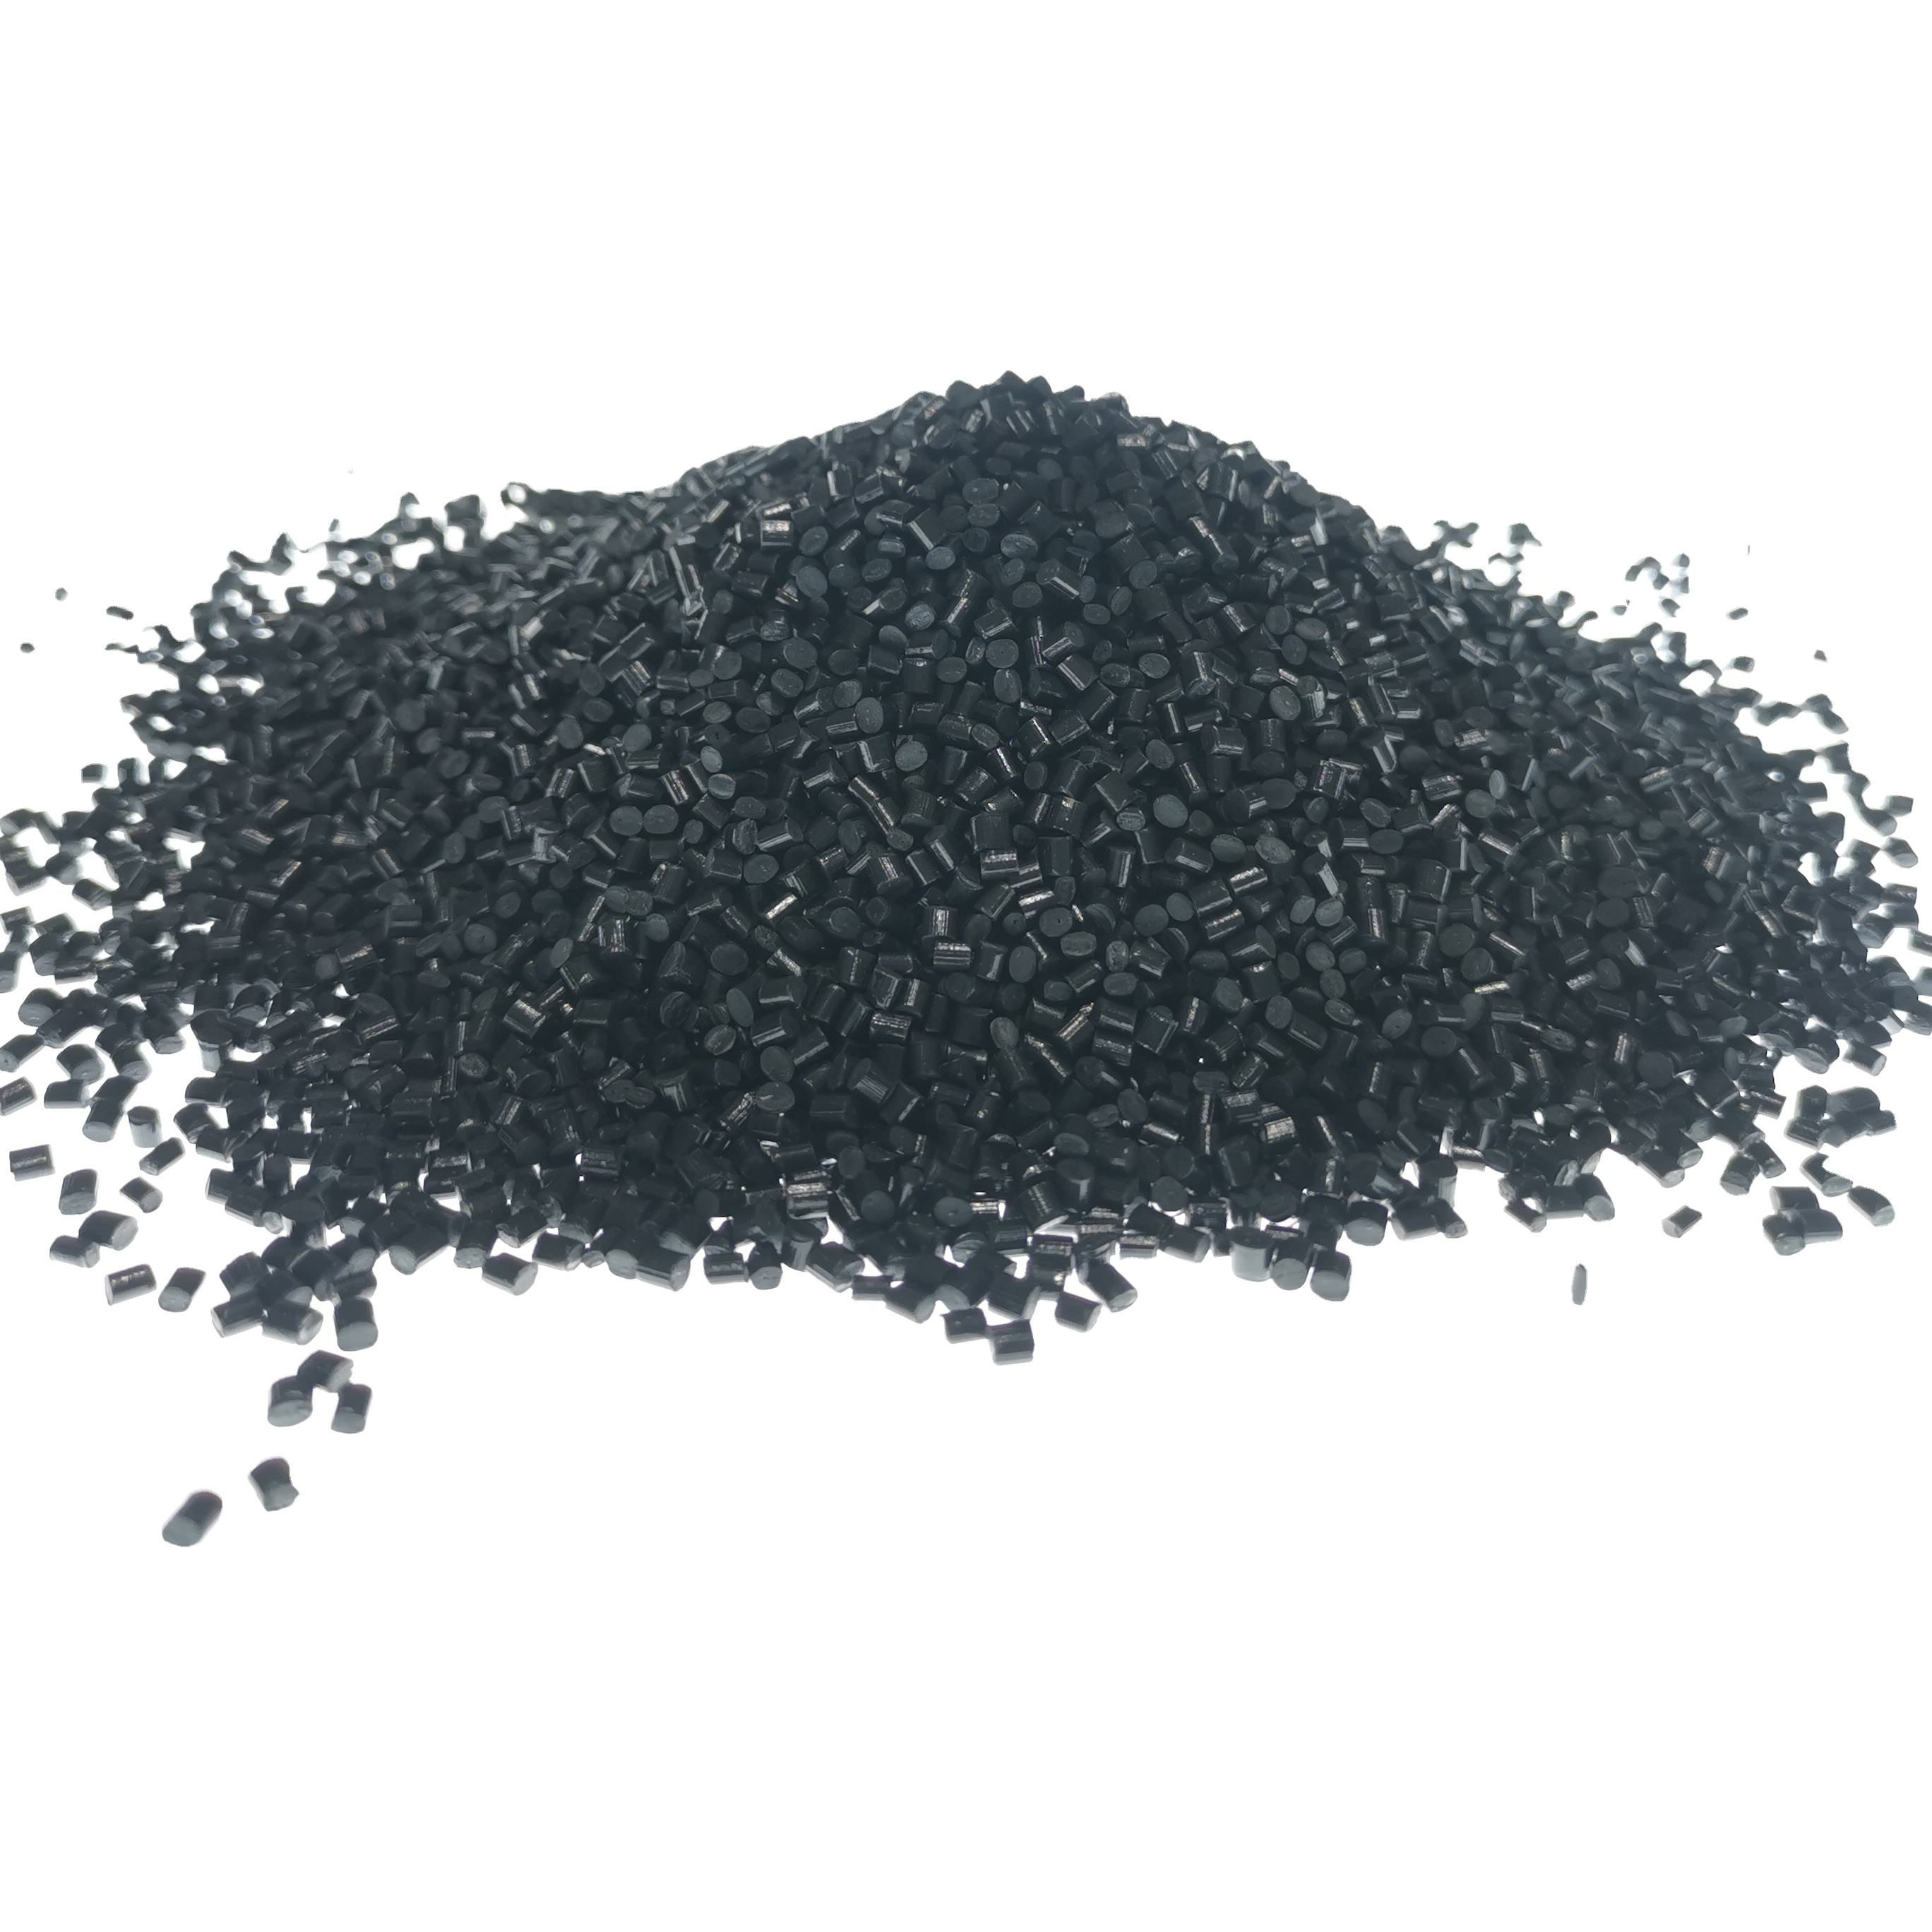 Black Recycled Plastic Material Injection grade PP polypropylene Granule For electrical plugs, toys, housings